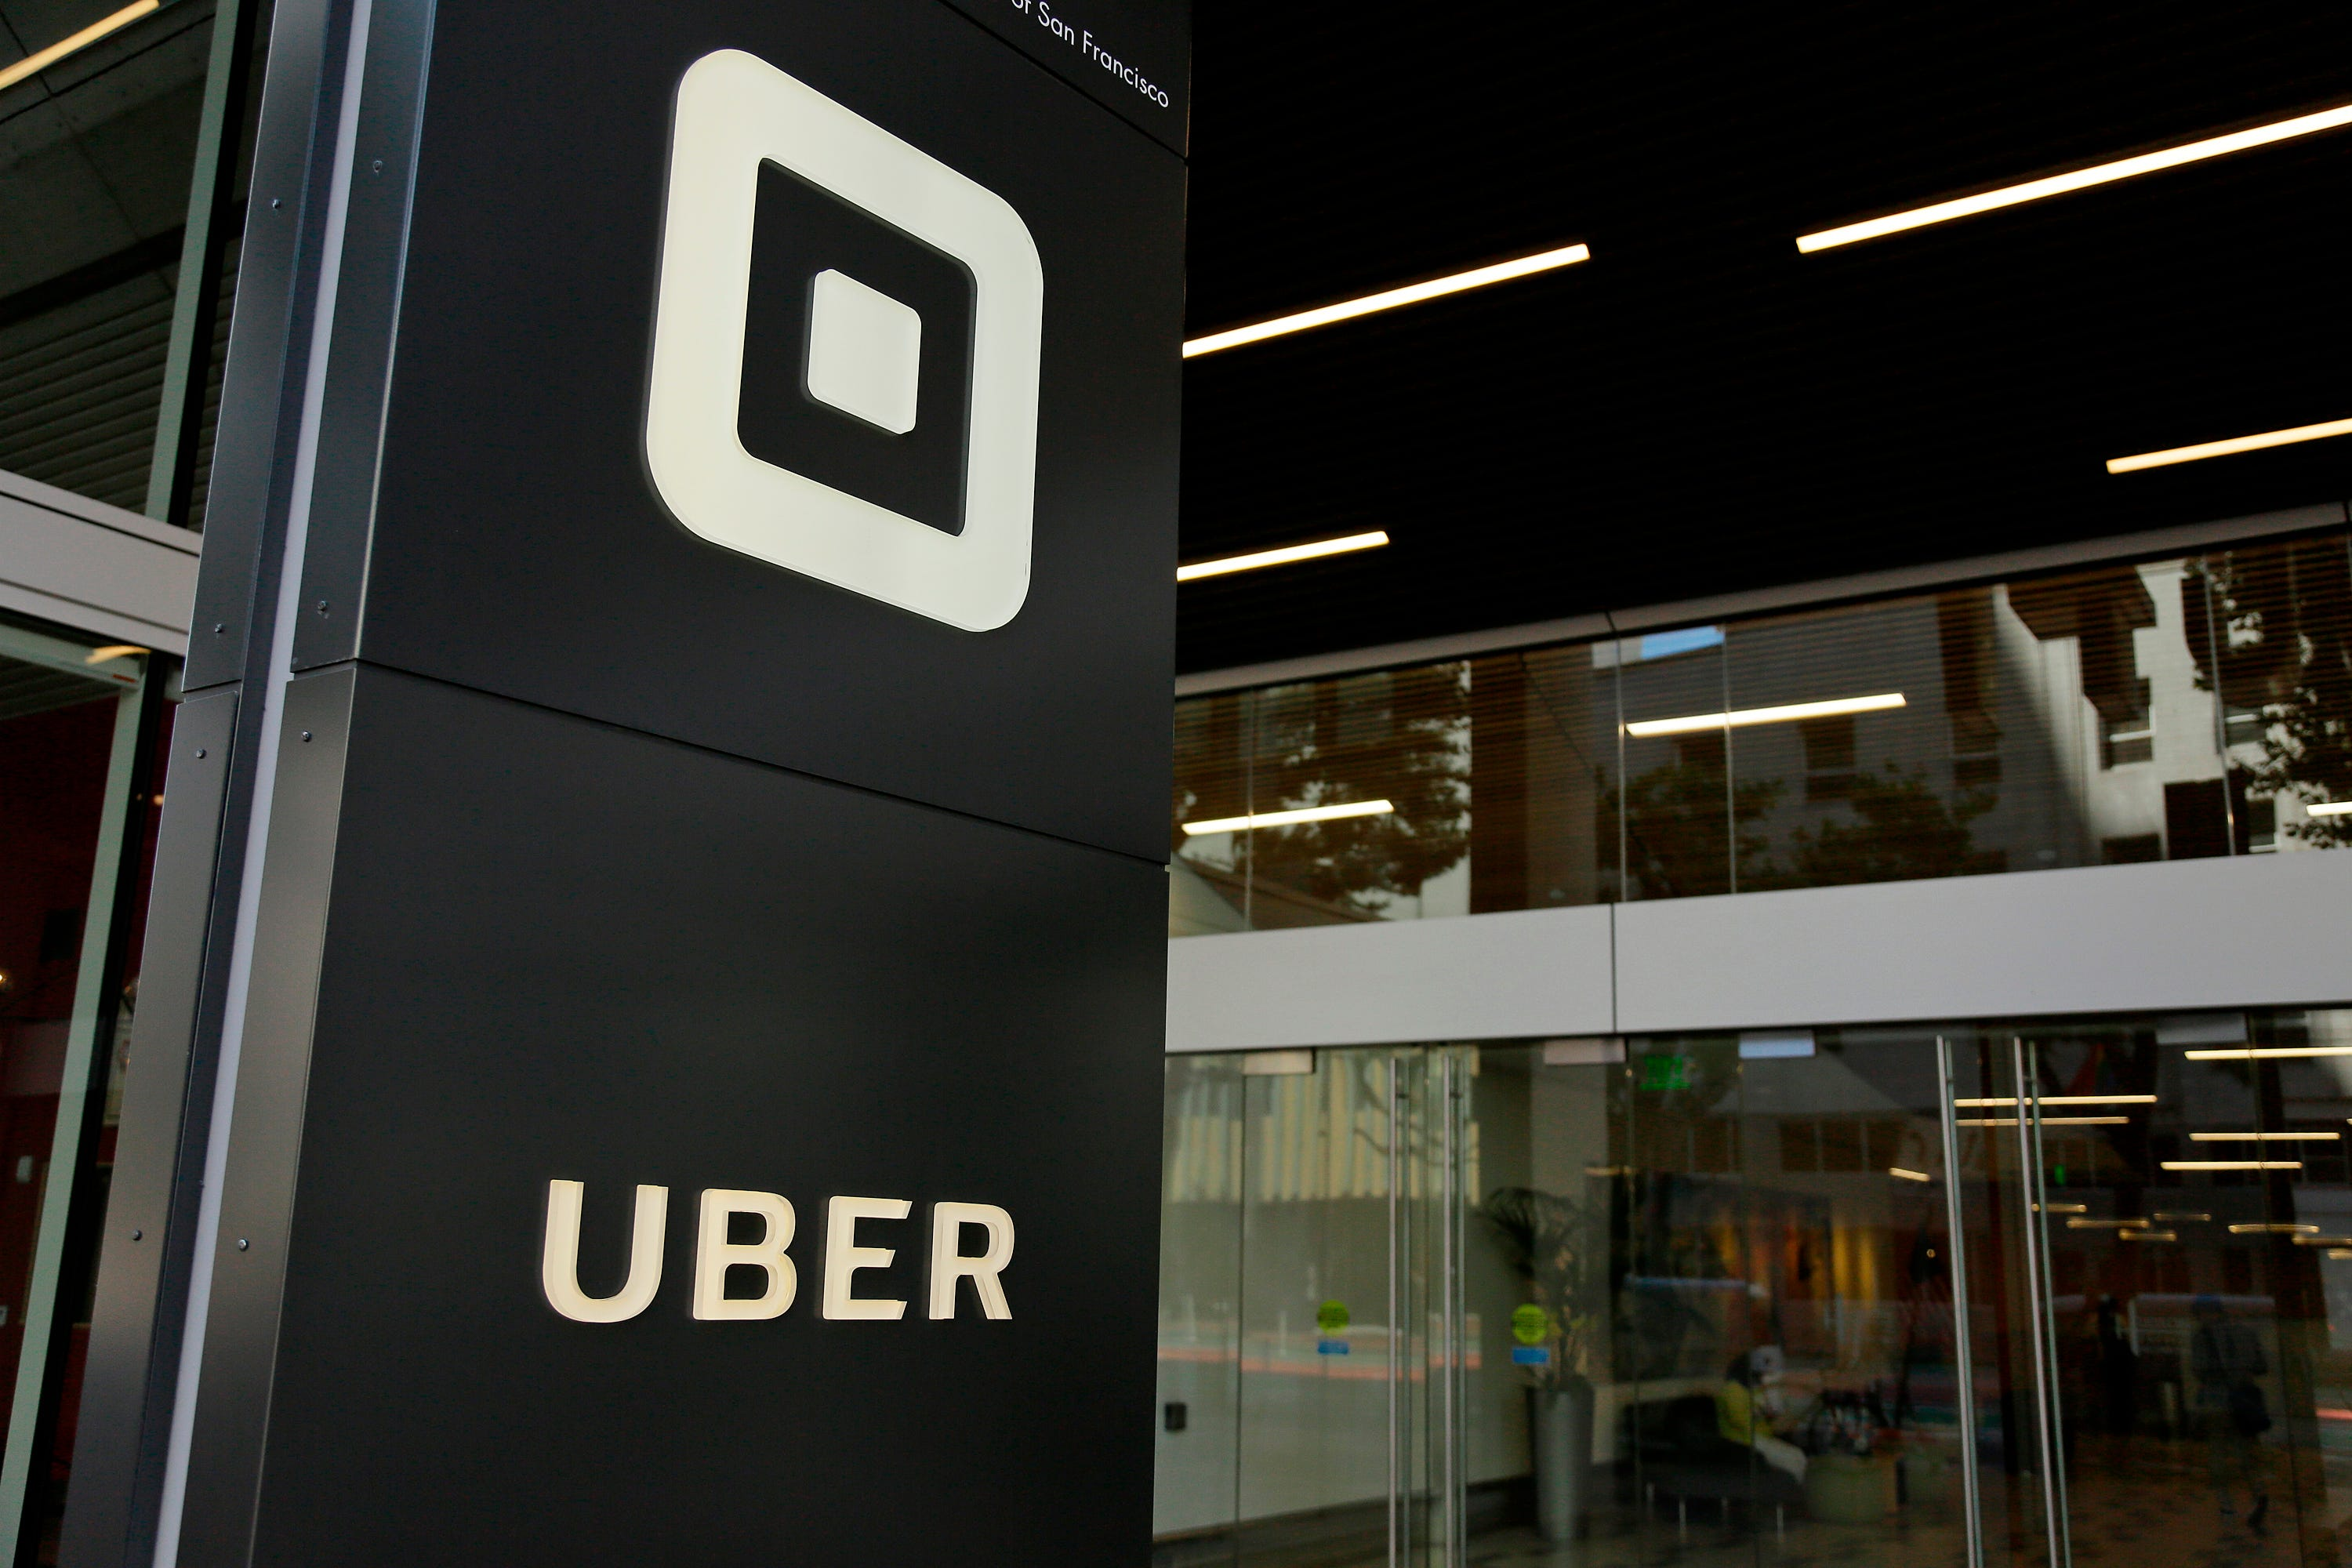 Uber replaces expensive helium balloon tradition with stickers